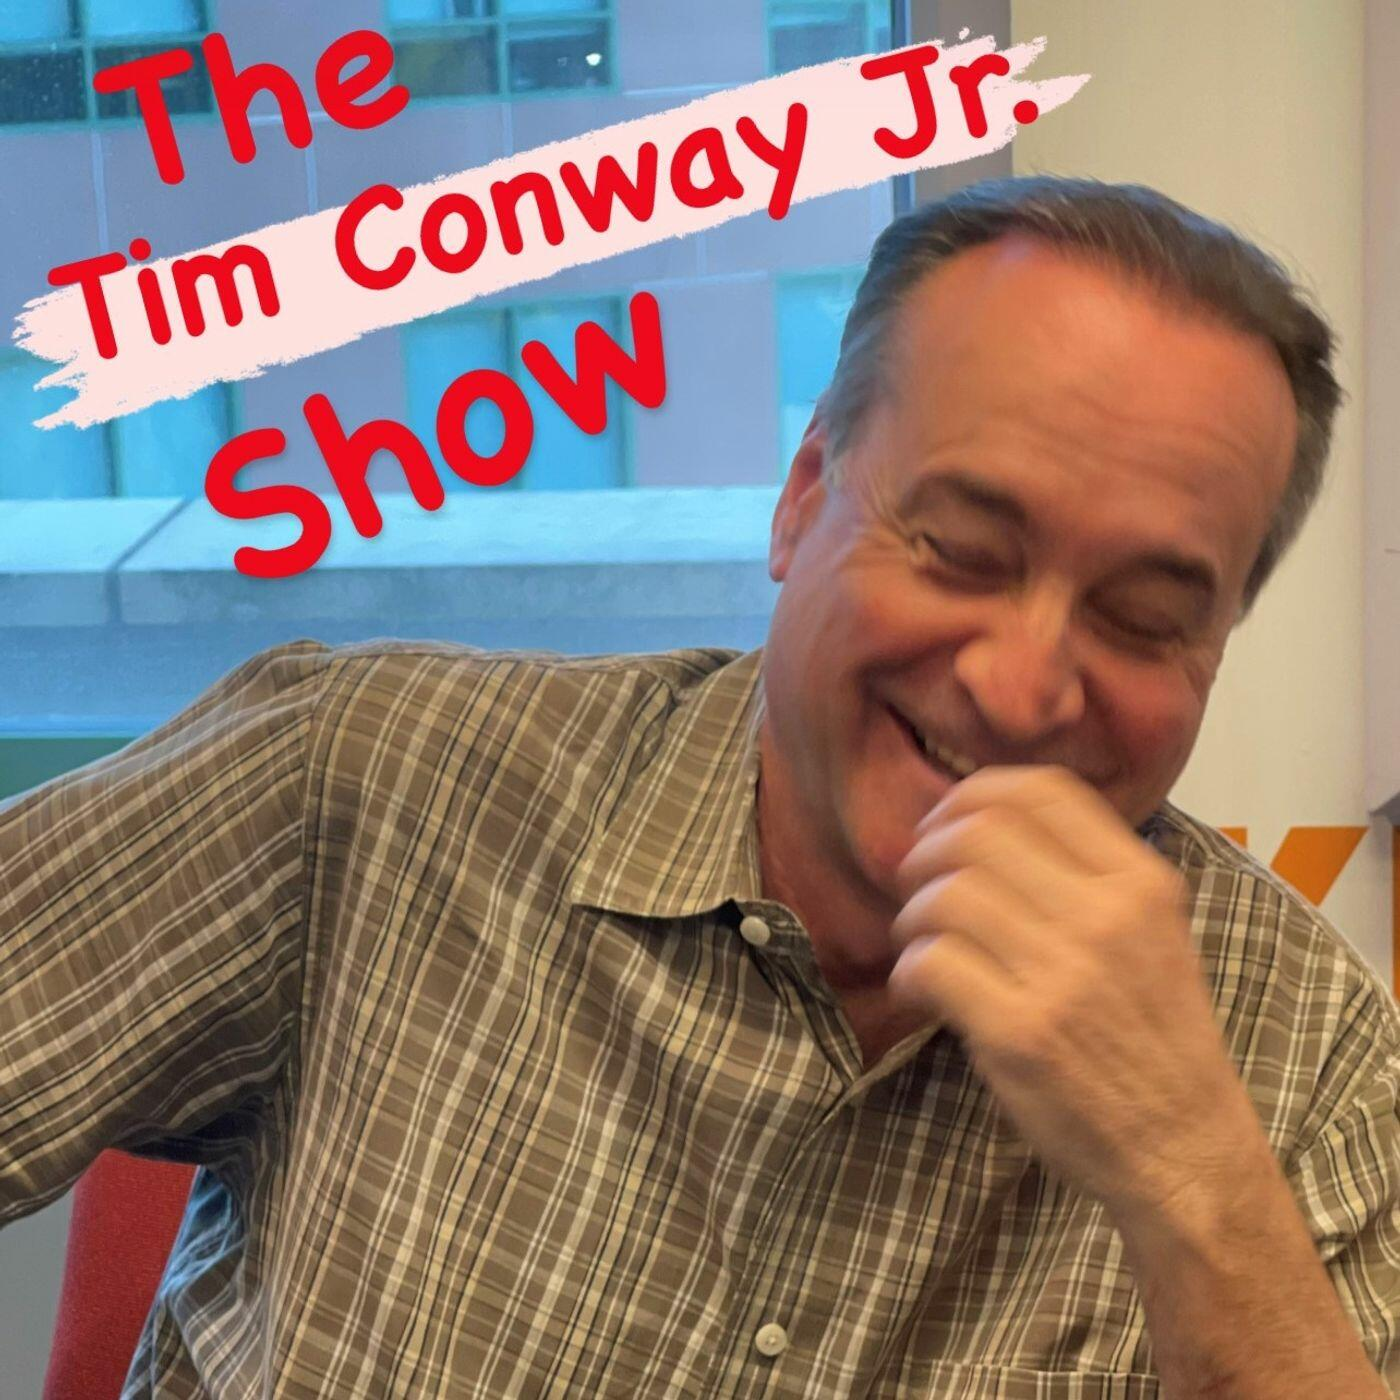 Listen to the Tim Conway Jr Show on Demand Episode - ConwayShow - Tim Conway Jr Remembers His Father on iHeartRadio | iHeartRadio